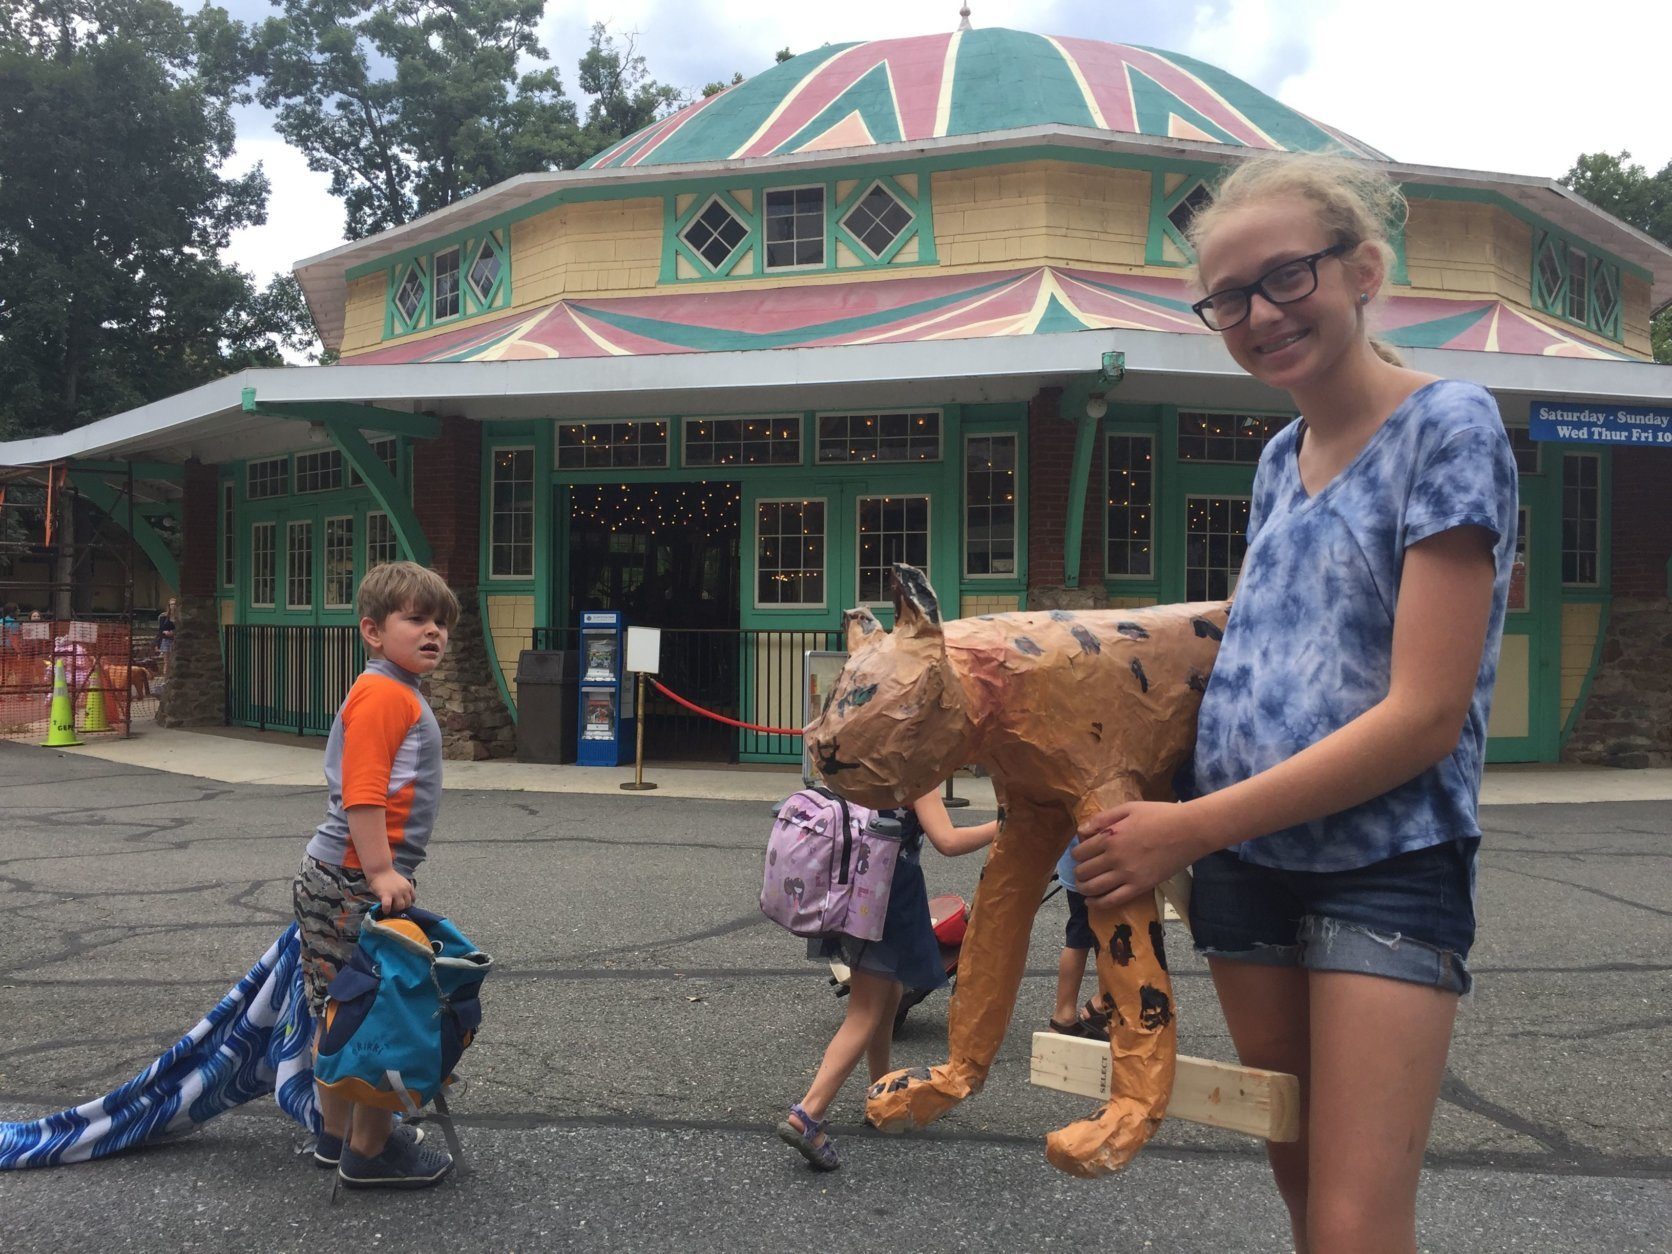 Claira Baisinger Rosen of Bethesda, Maryland, thinks Glen Echo Park is great because of all the different camps where kids can make a lot of different art. She created the paper mache leopard attending Carousel Animals Camp For Teens. (WTOP/Kristi King)